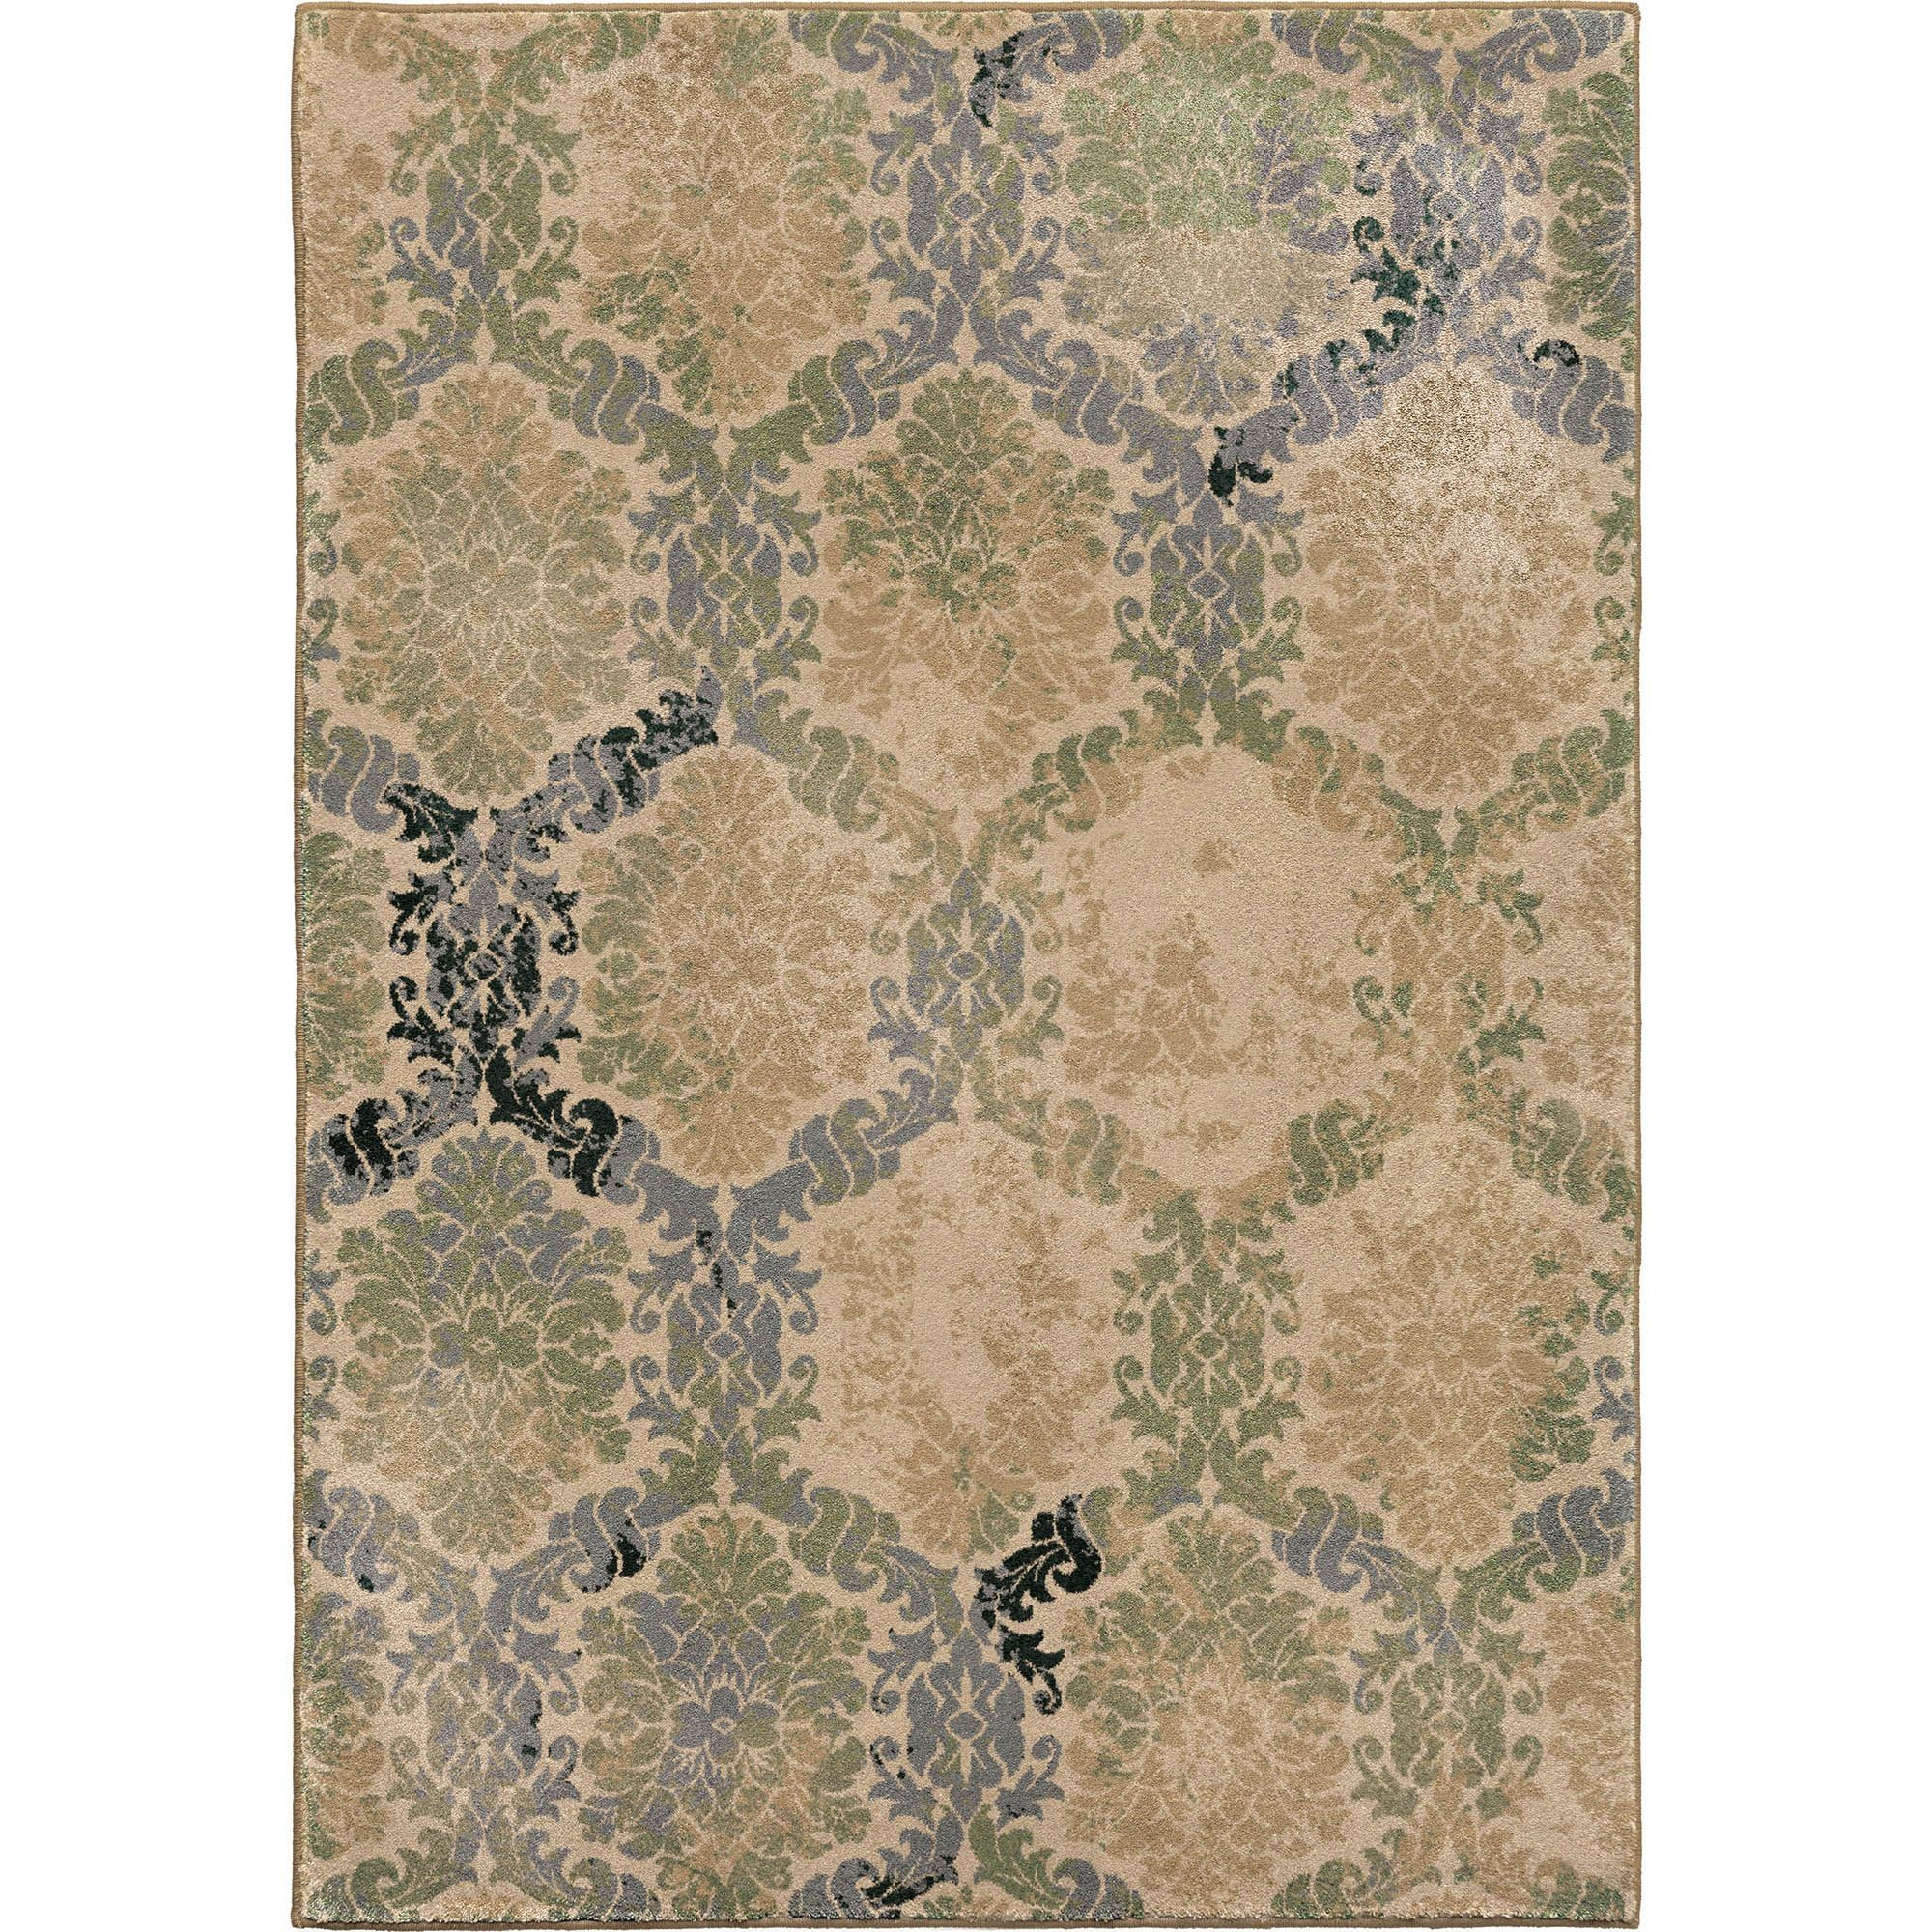 Discount 8x11 Area Rugs: Oxfordburst Green Large Rug From Orian (3205 8x11